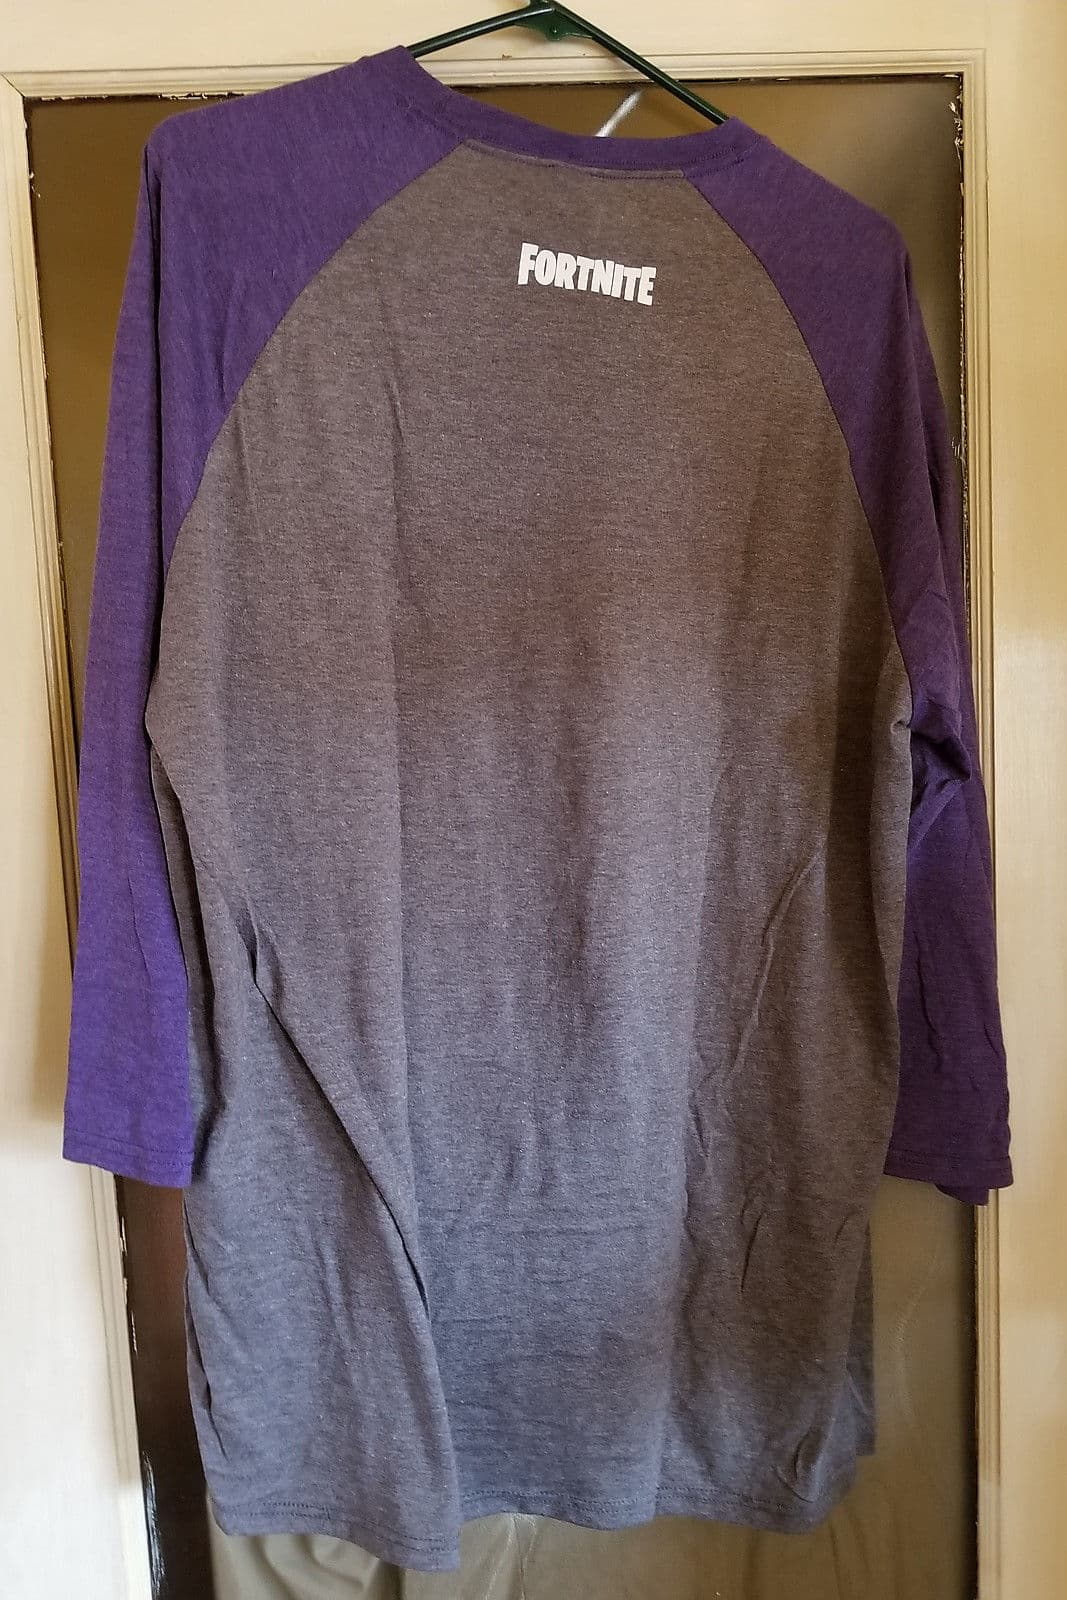 NEW RARE FORTNITE PINIATA PROMO SWAG SHIRT EPIC VIDEO GAME OFFICIAL 2